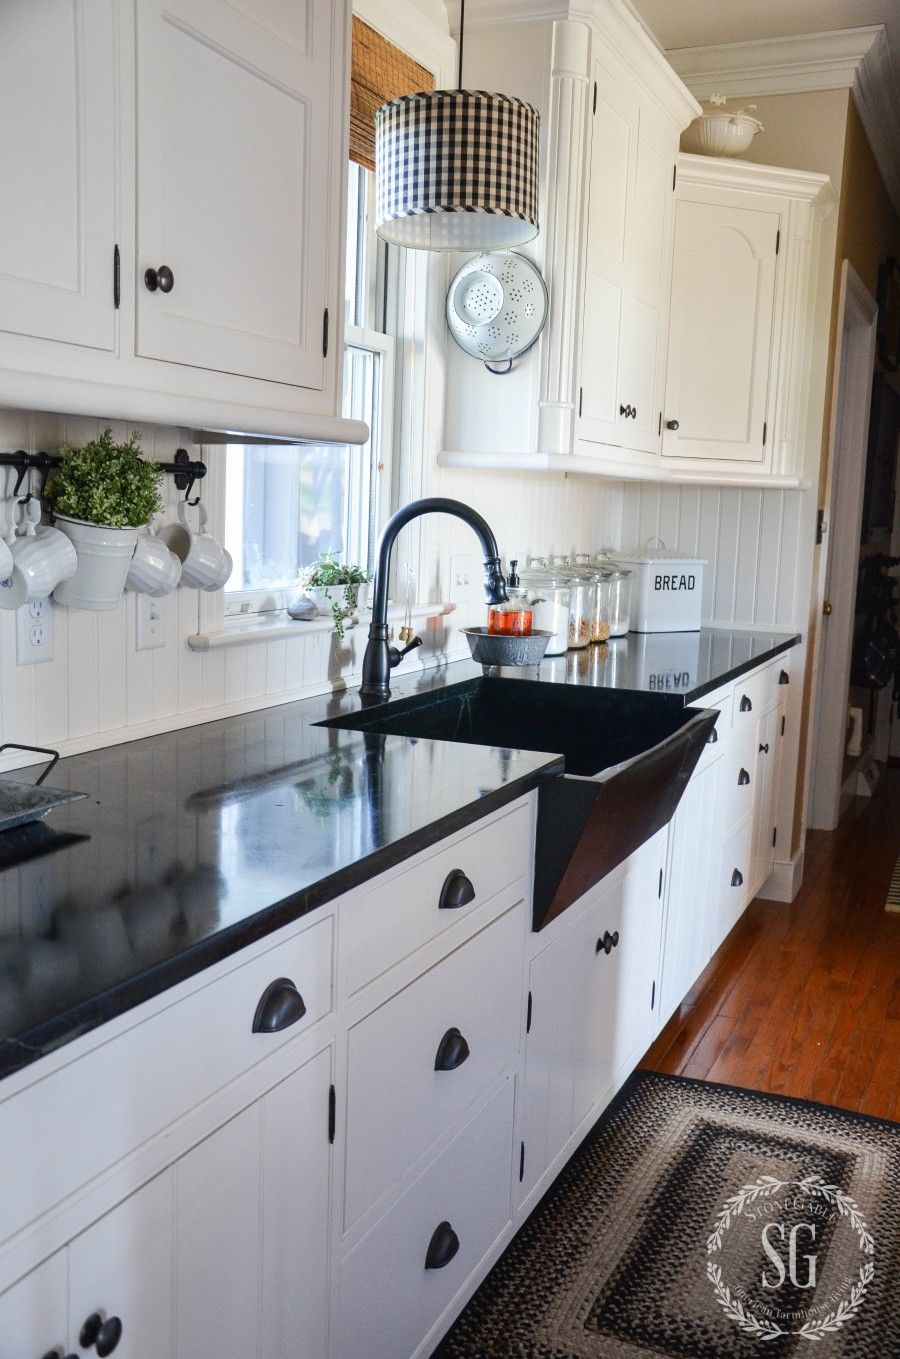 Keeping Liances In Tip Top Shape Over The Holidays Kitchen Best Lianceskitchen Cabinetsblack